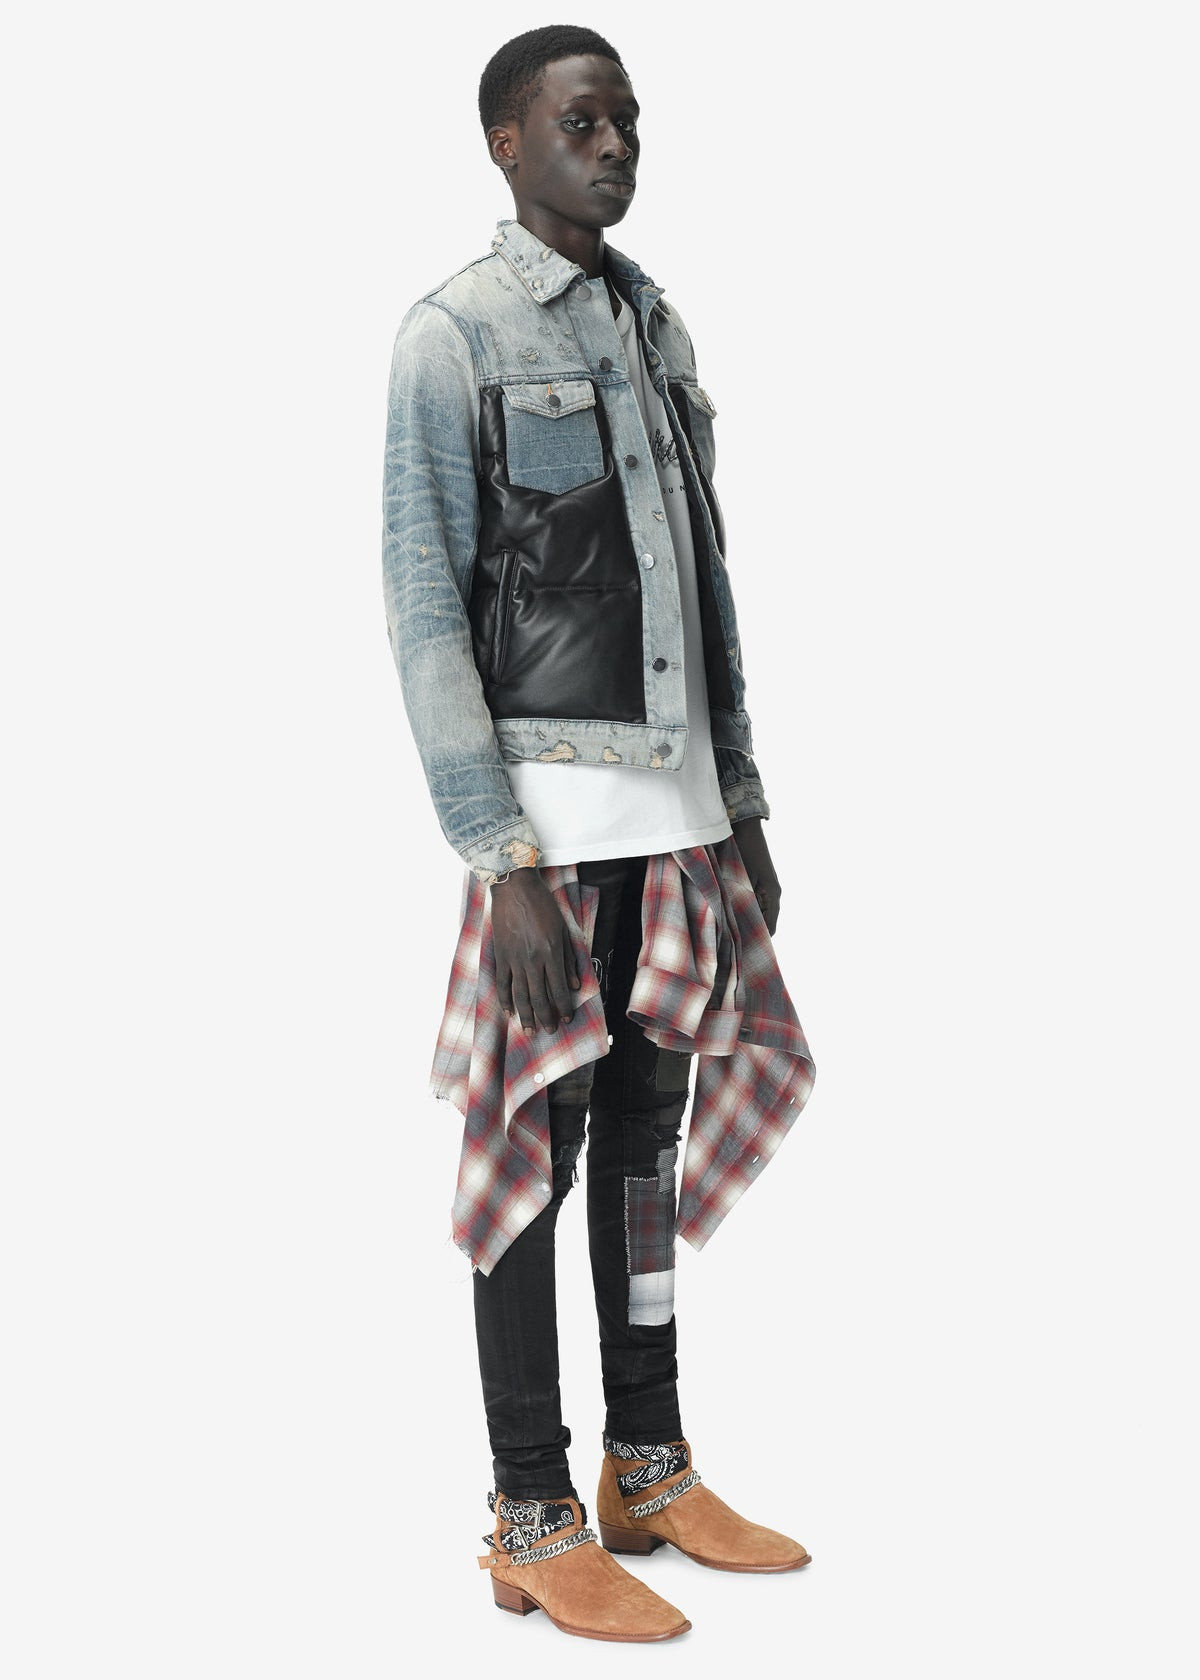 files/M_Outerwear_Down_Denim_Jacket_VBL_003.jpg